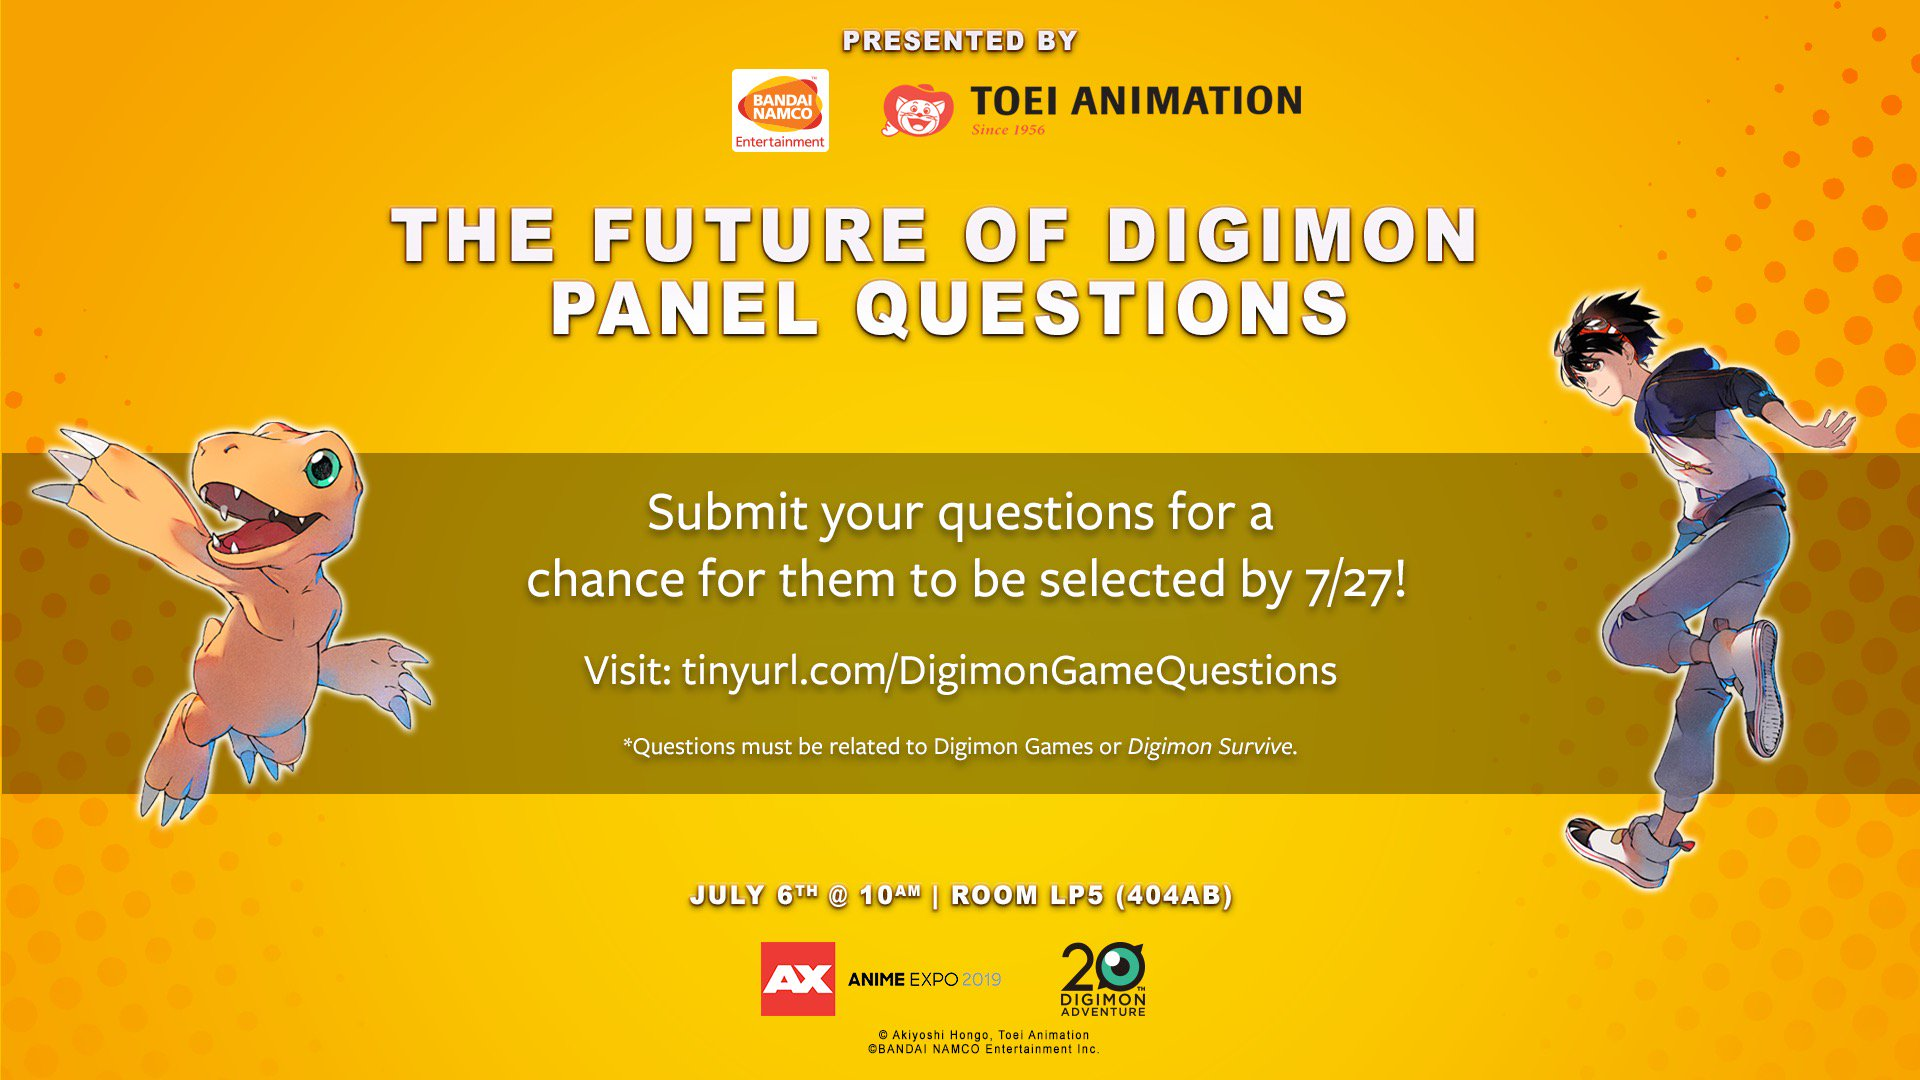 In case you were worried, Bandai Namco teases that there is no end for Digimon in sight screenshot